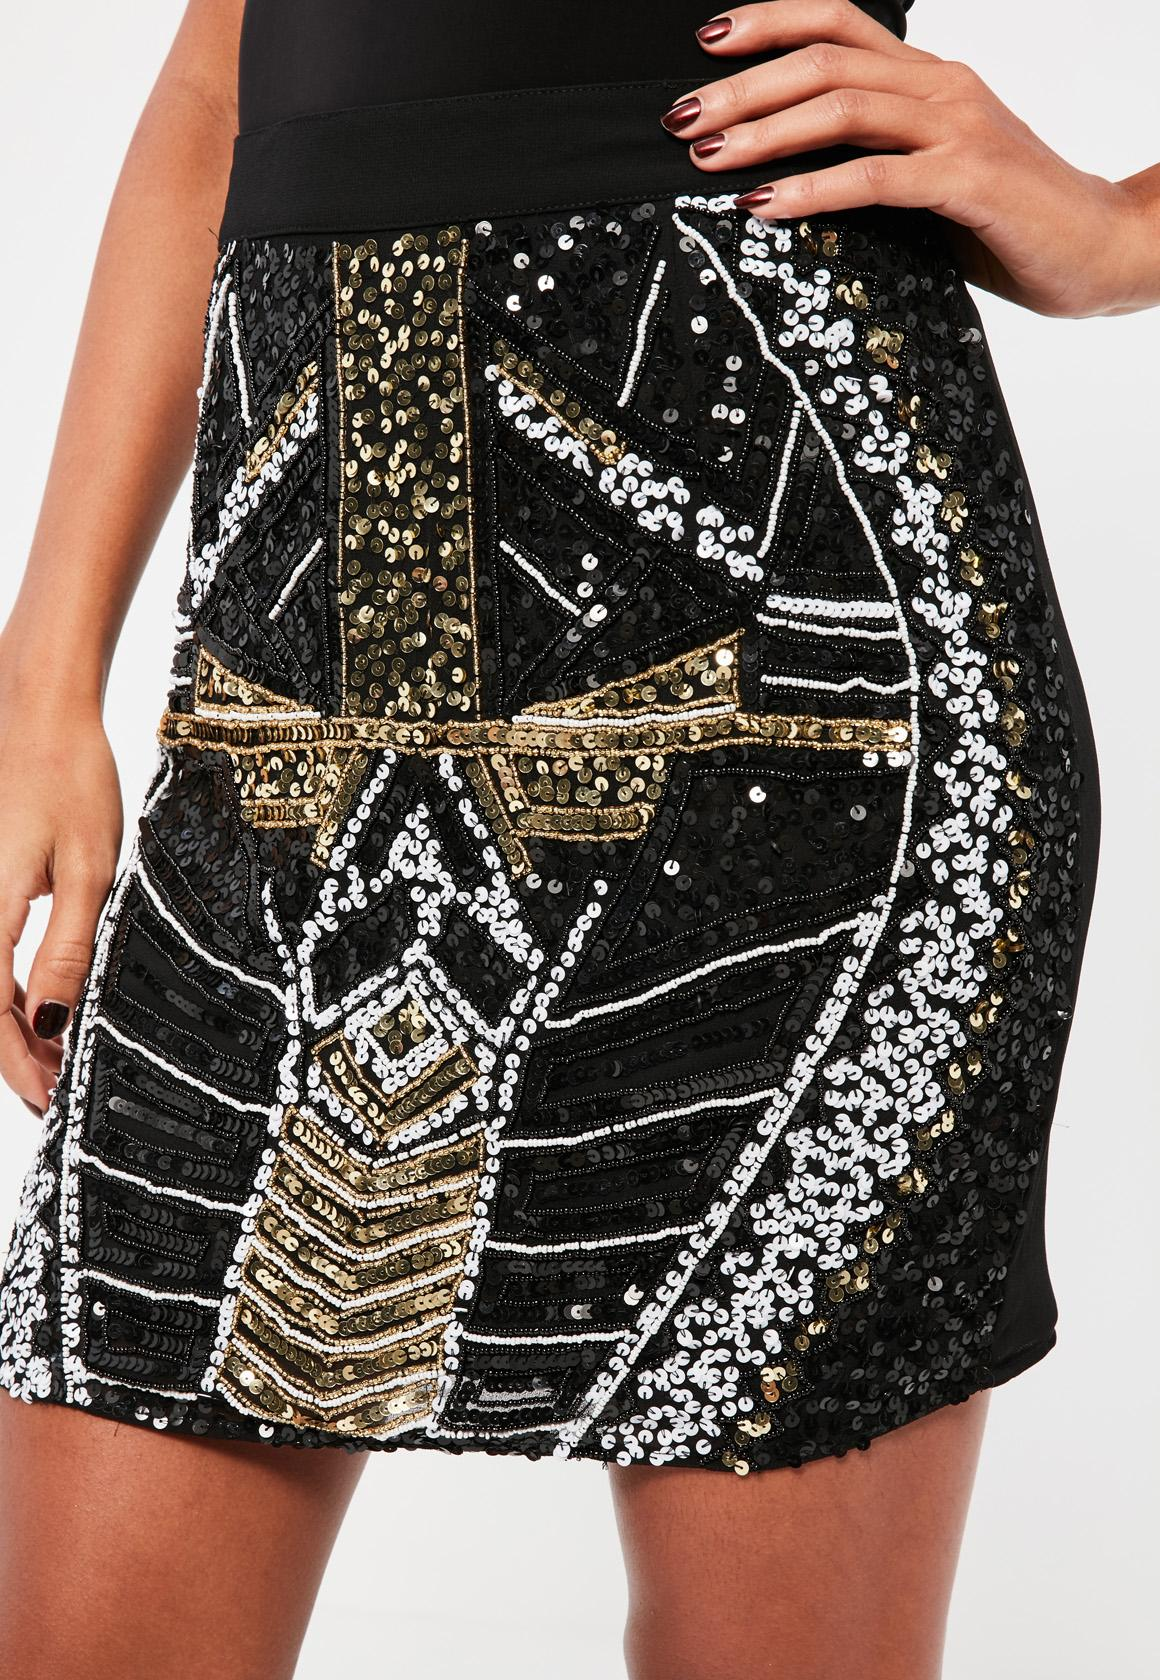 Black All Over Embellished Sequin and Pearl Mini Skirt